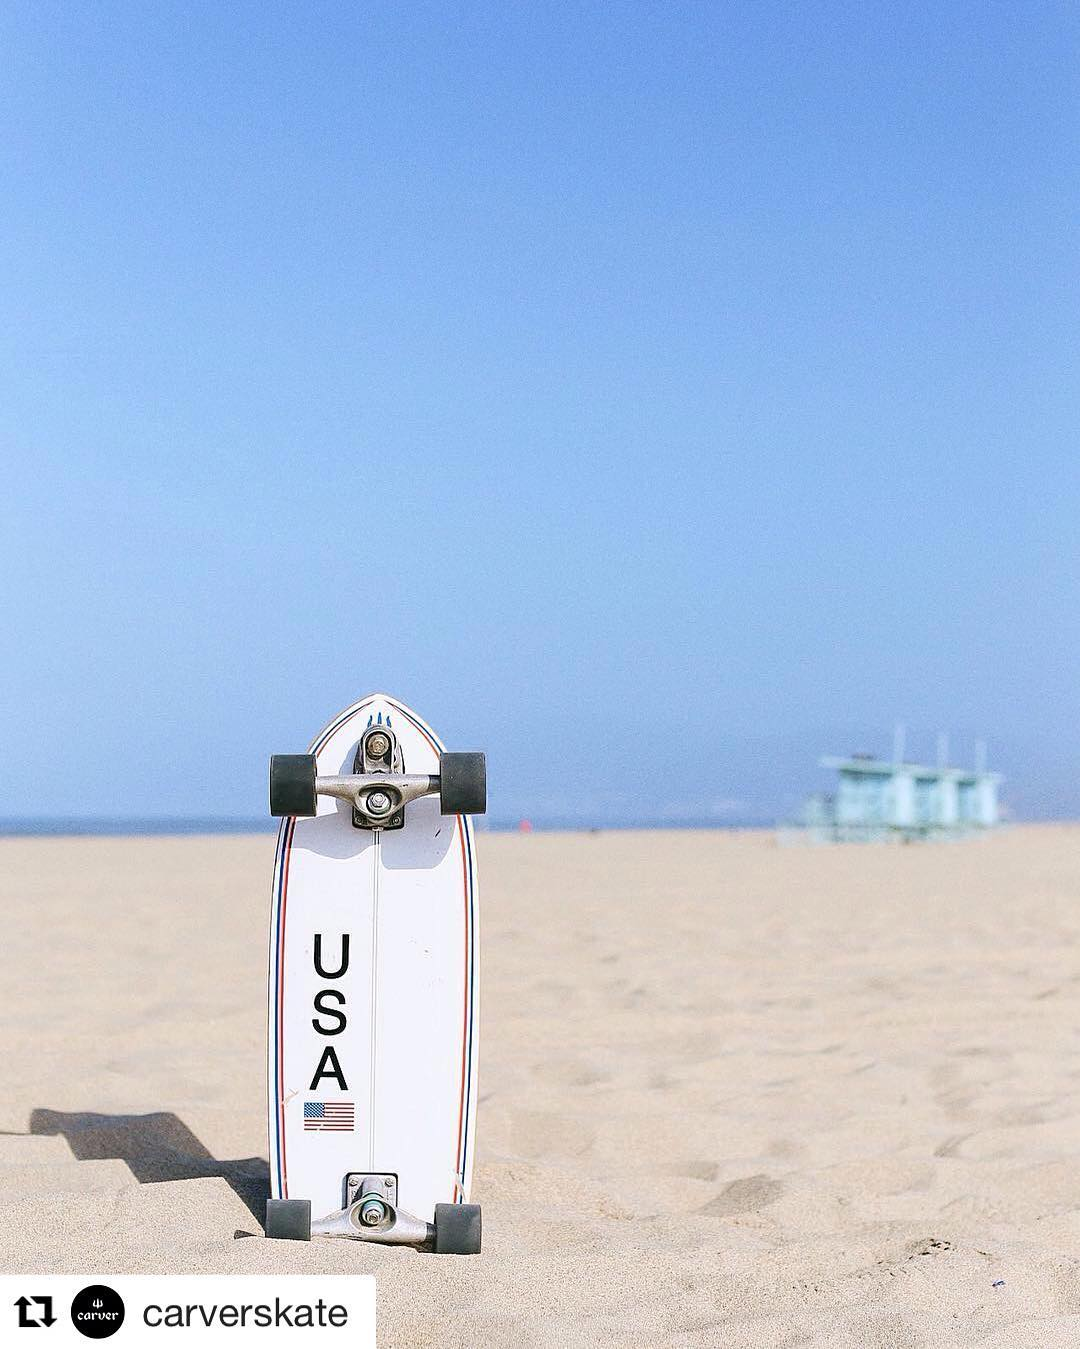 #Repost @carverskate (via @repostapp) ・・・ Proud to be independently Made in USA since 1996. Have a safe and fun holiday weekend! | #carverskate #carverskateboards #surfyourskate